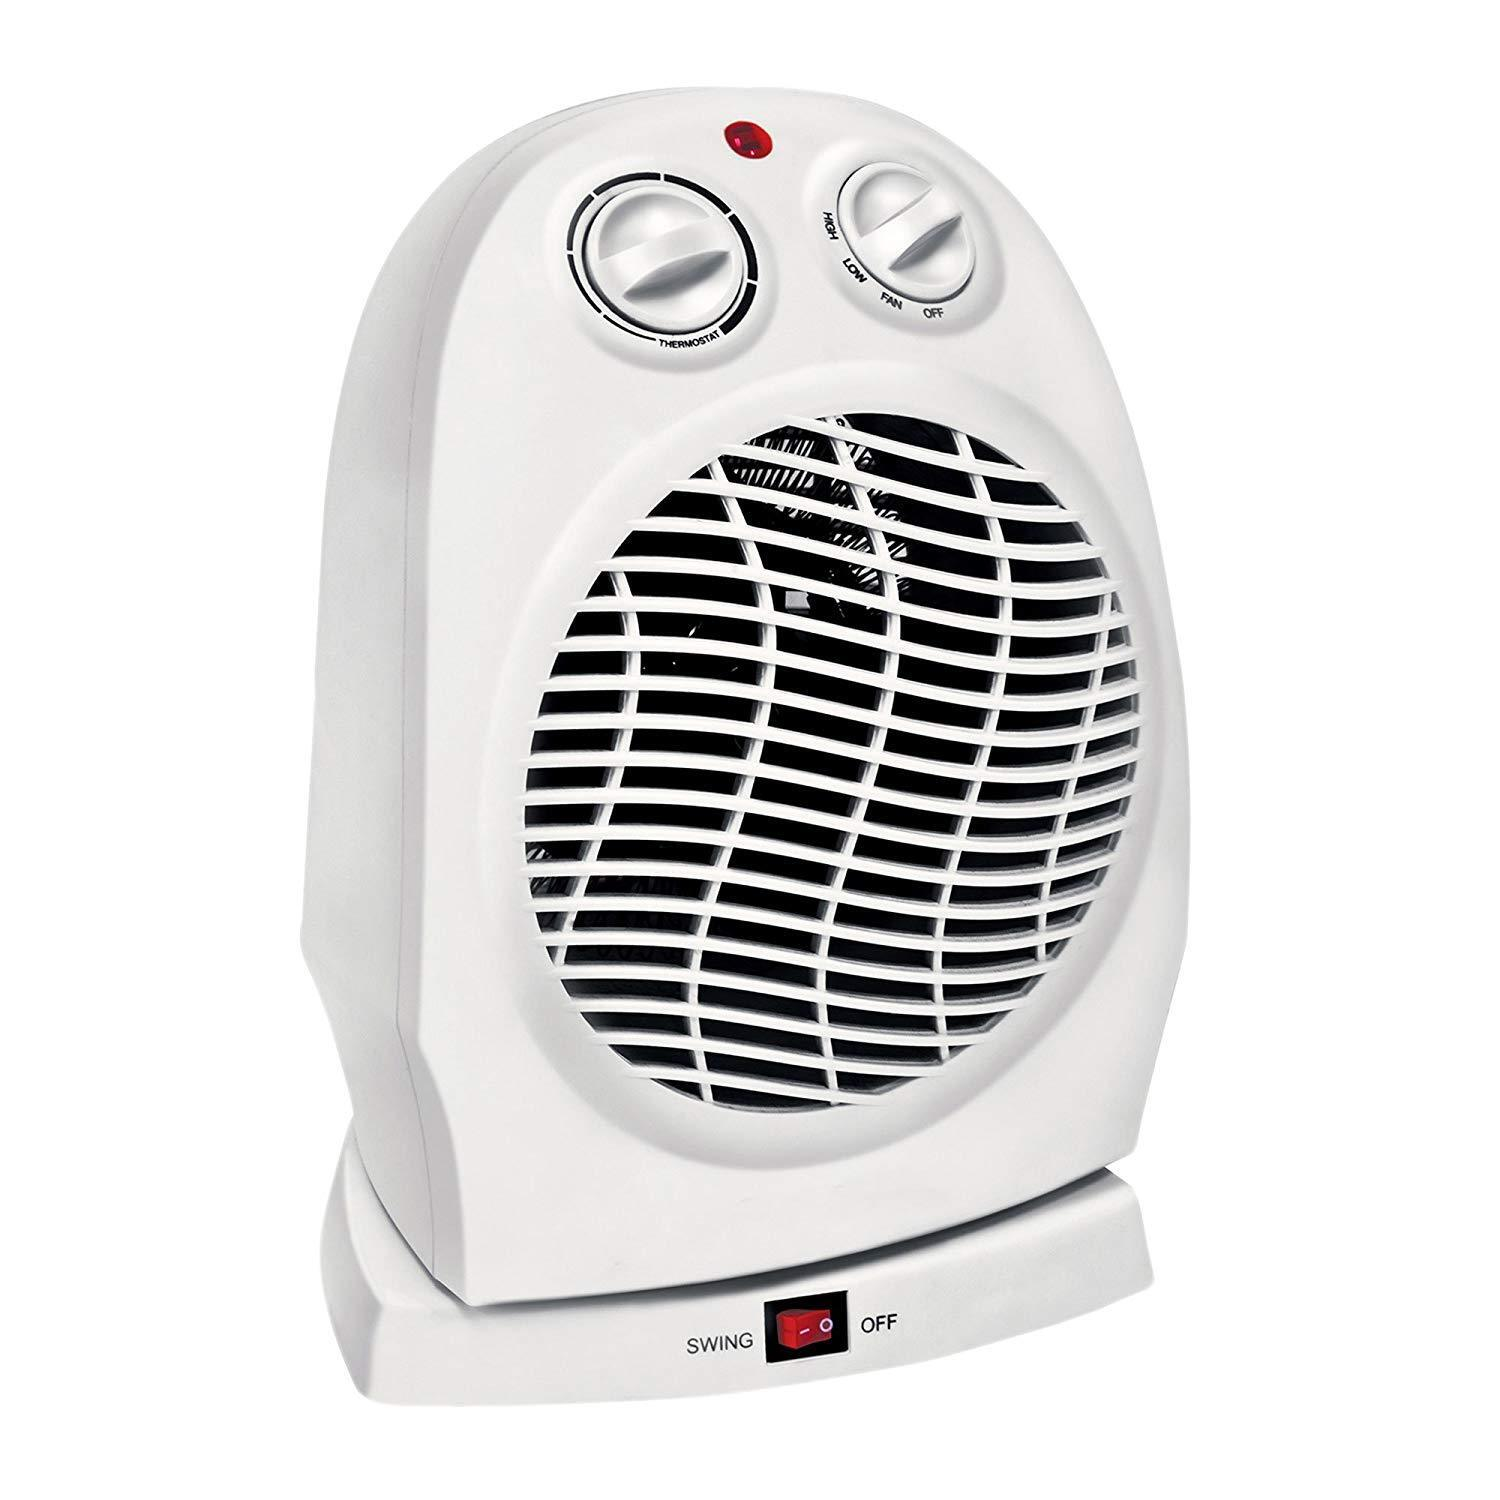 Oscillating Compact Space Heater Fan Portable Home 1500W, Adjustable Thermostat Heating & Cooling Appliances